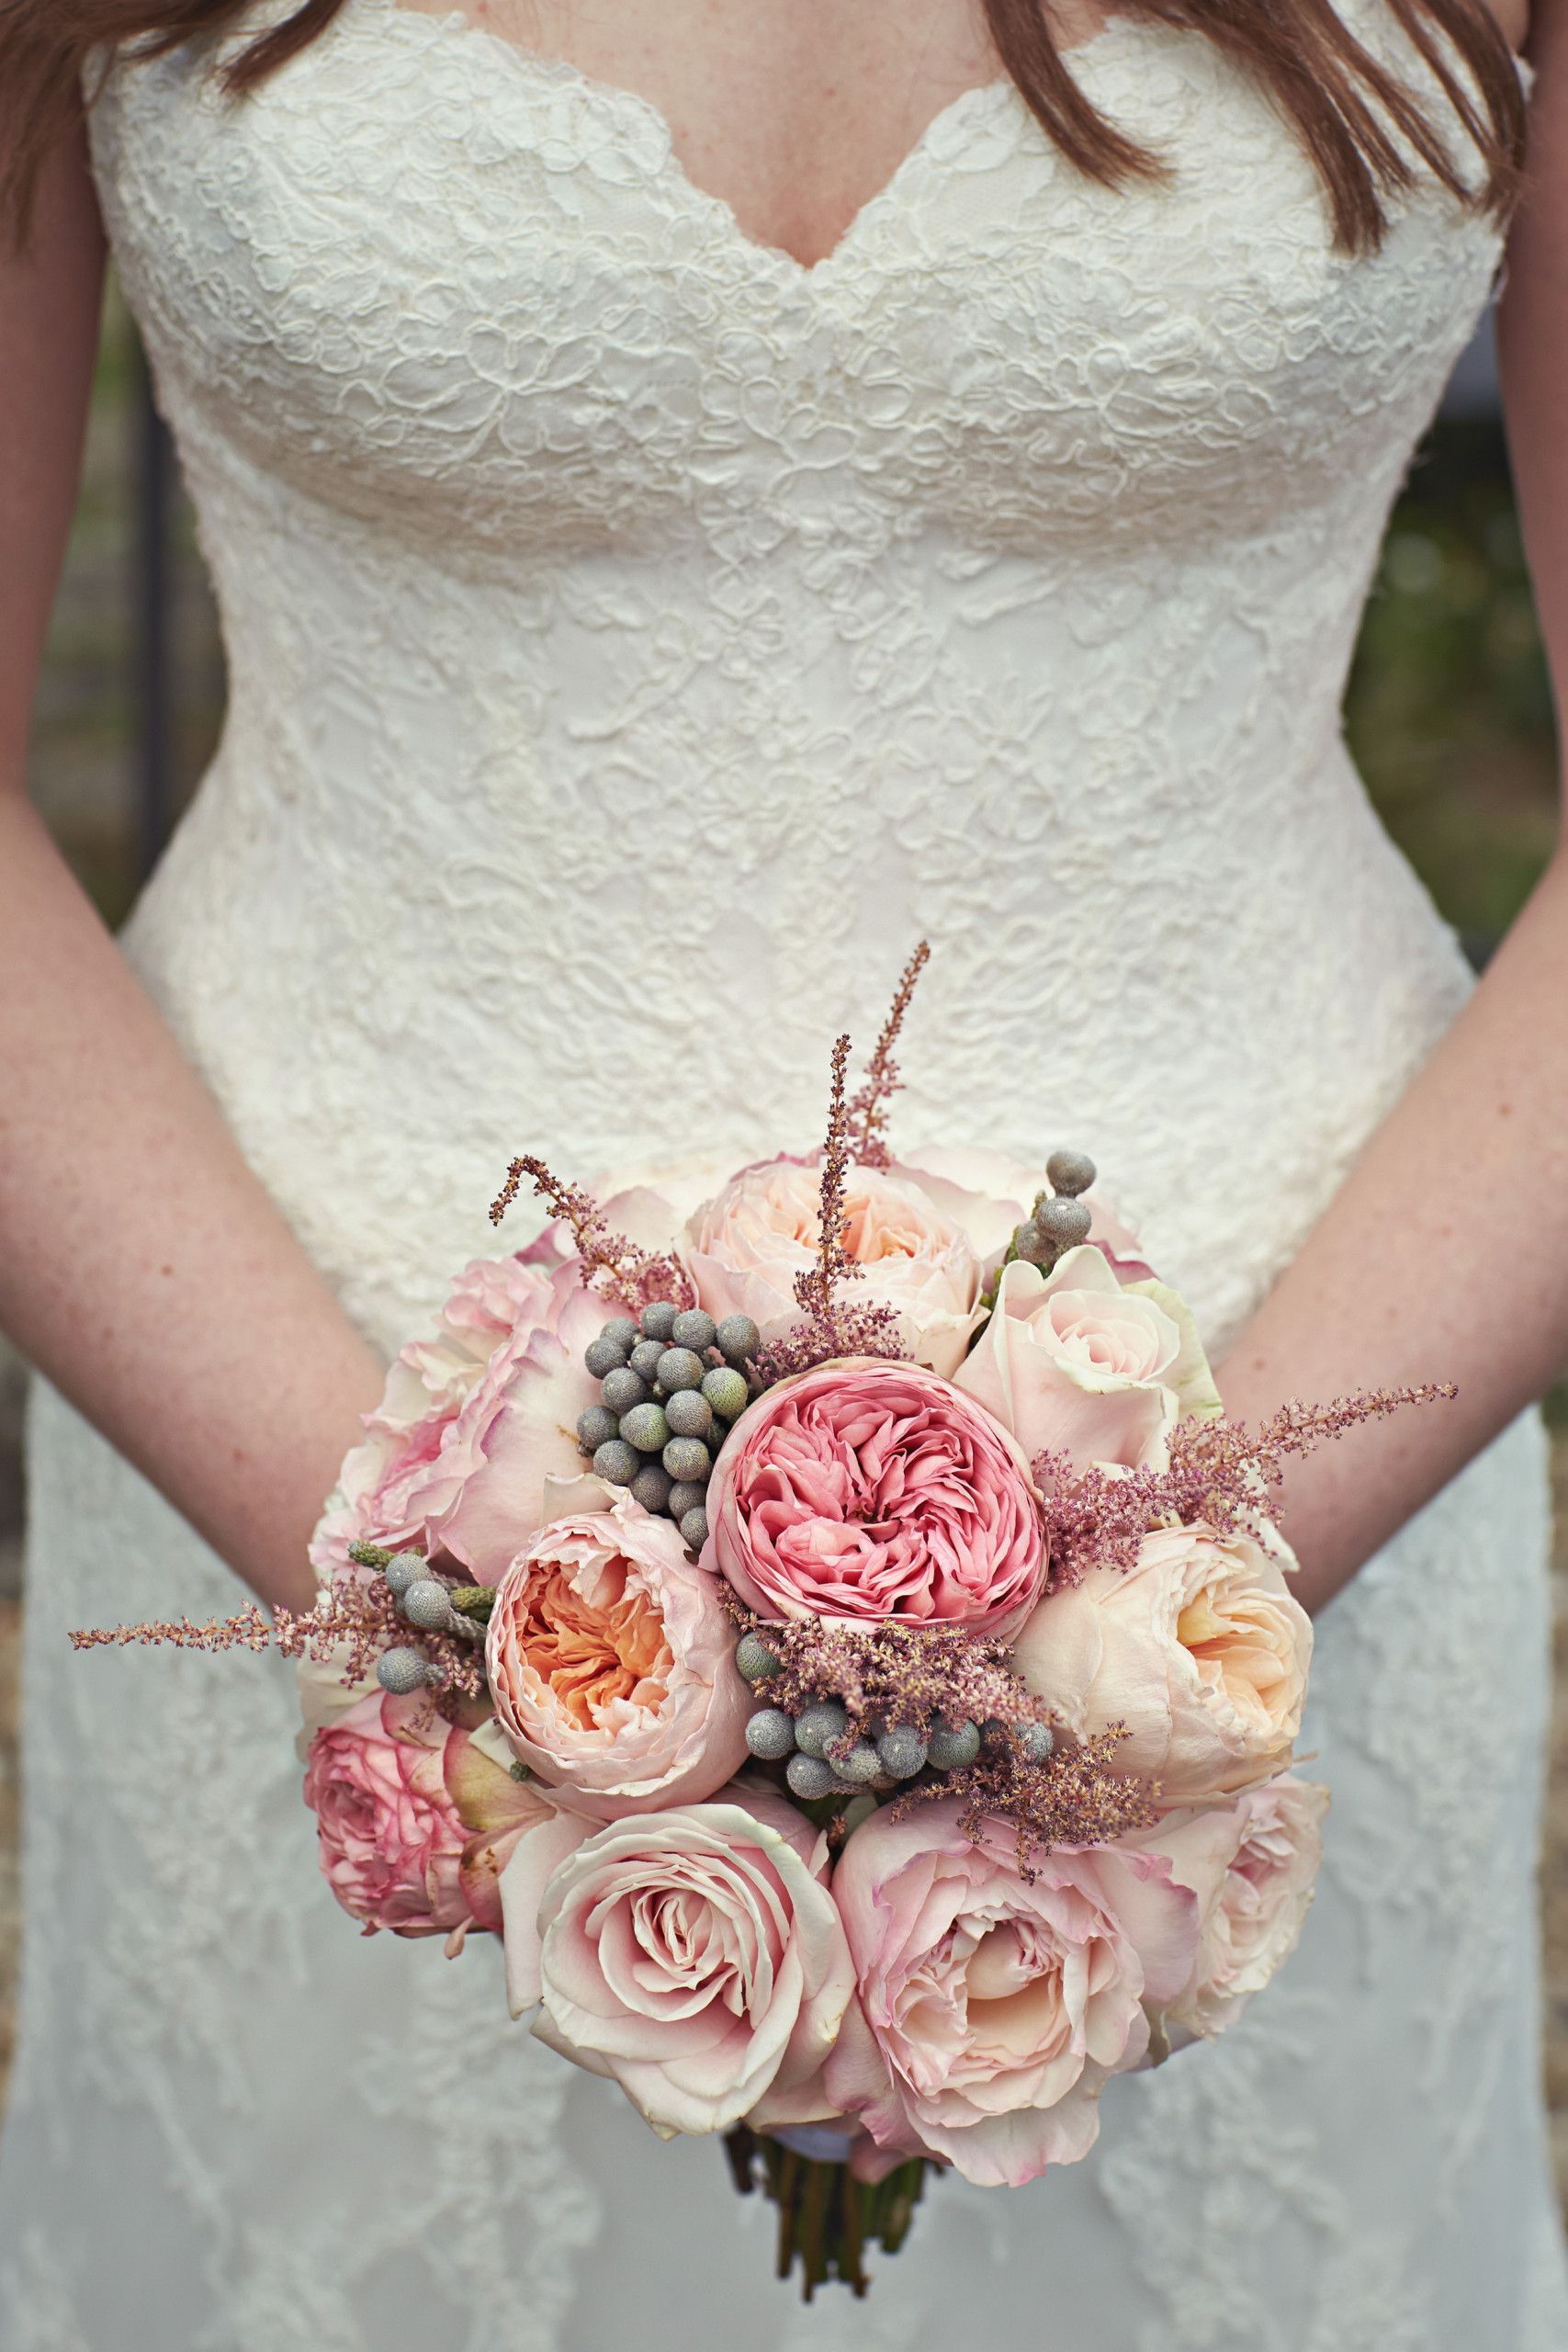 Beautiful wedding bouquet for this fall with the garden roses Juliet and Keira from the David Austin collection